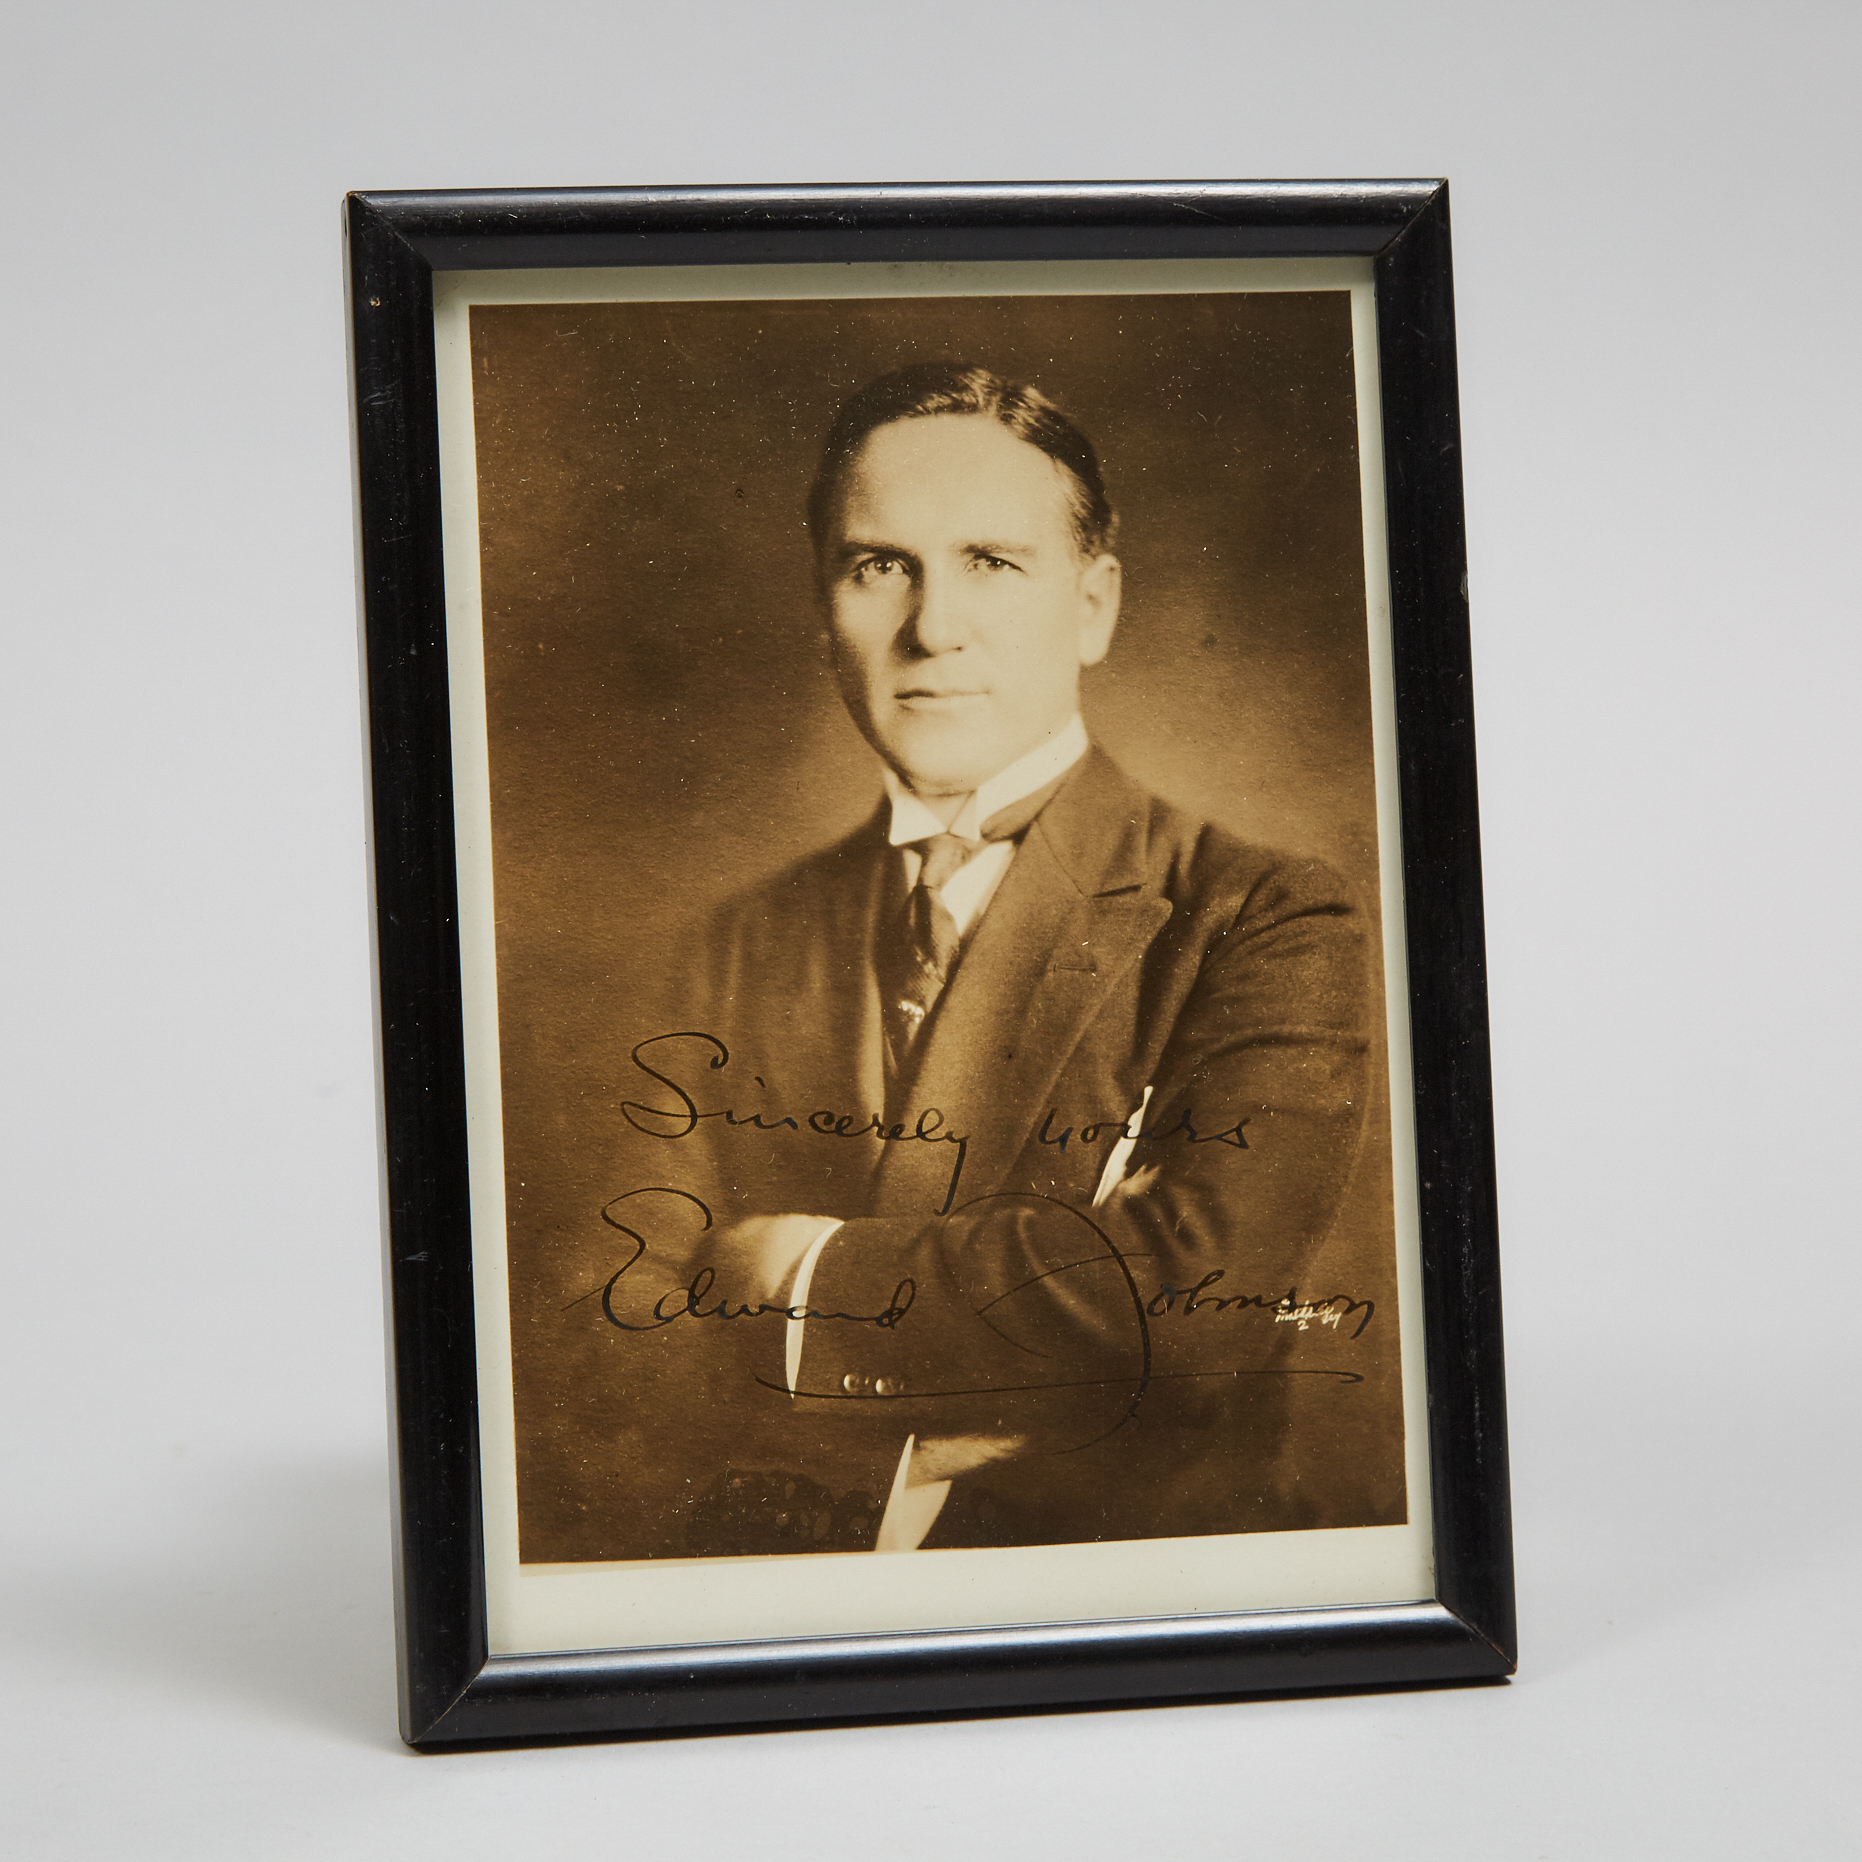 Edward Johnson (1878-1959) Signed Photograph Portrait, early-mid 20th century